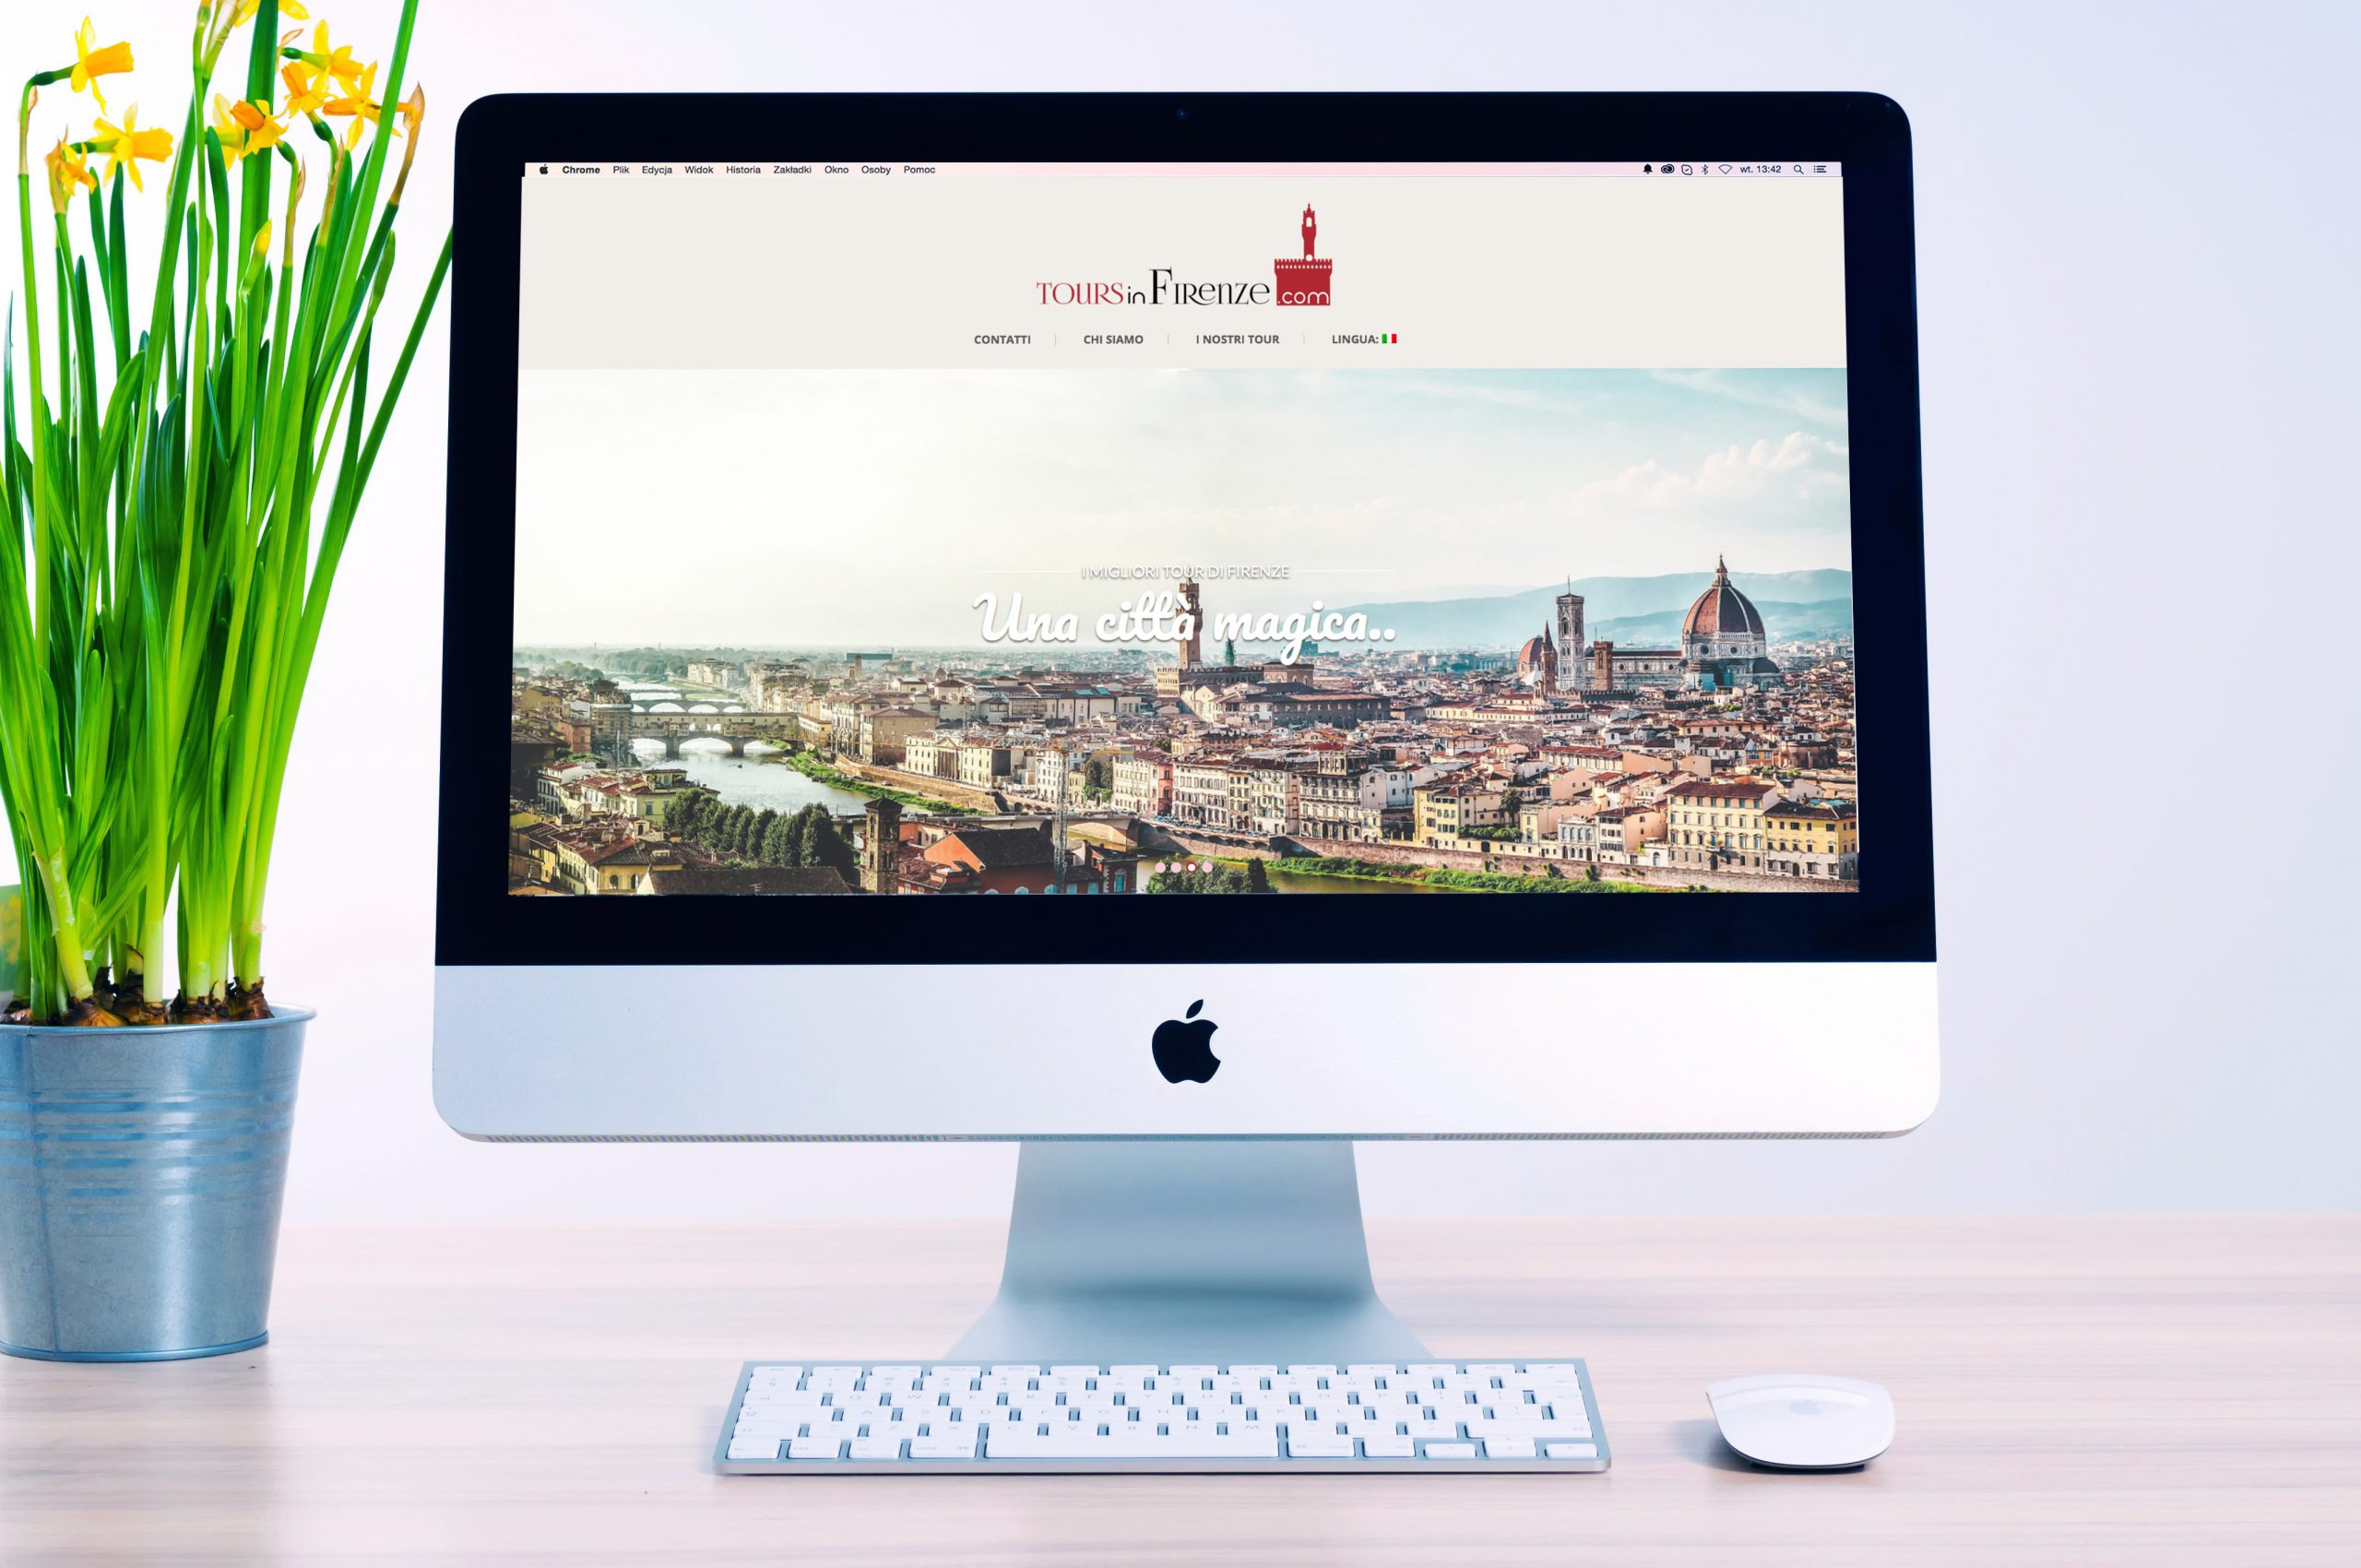 Toursinfirenze.com scaled